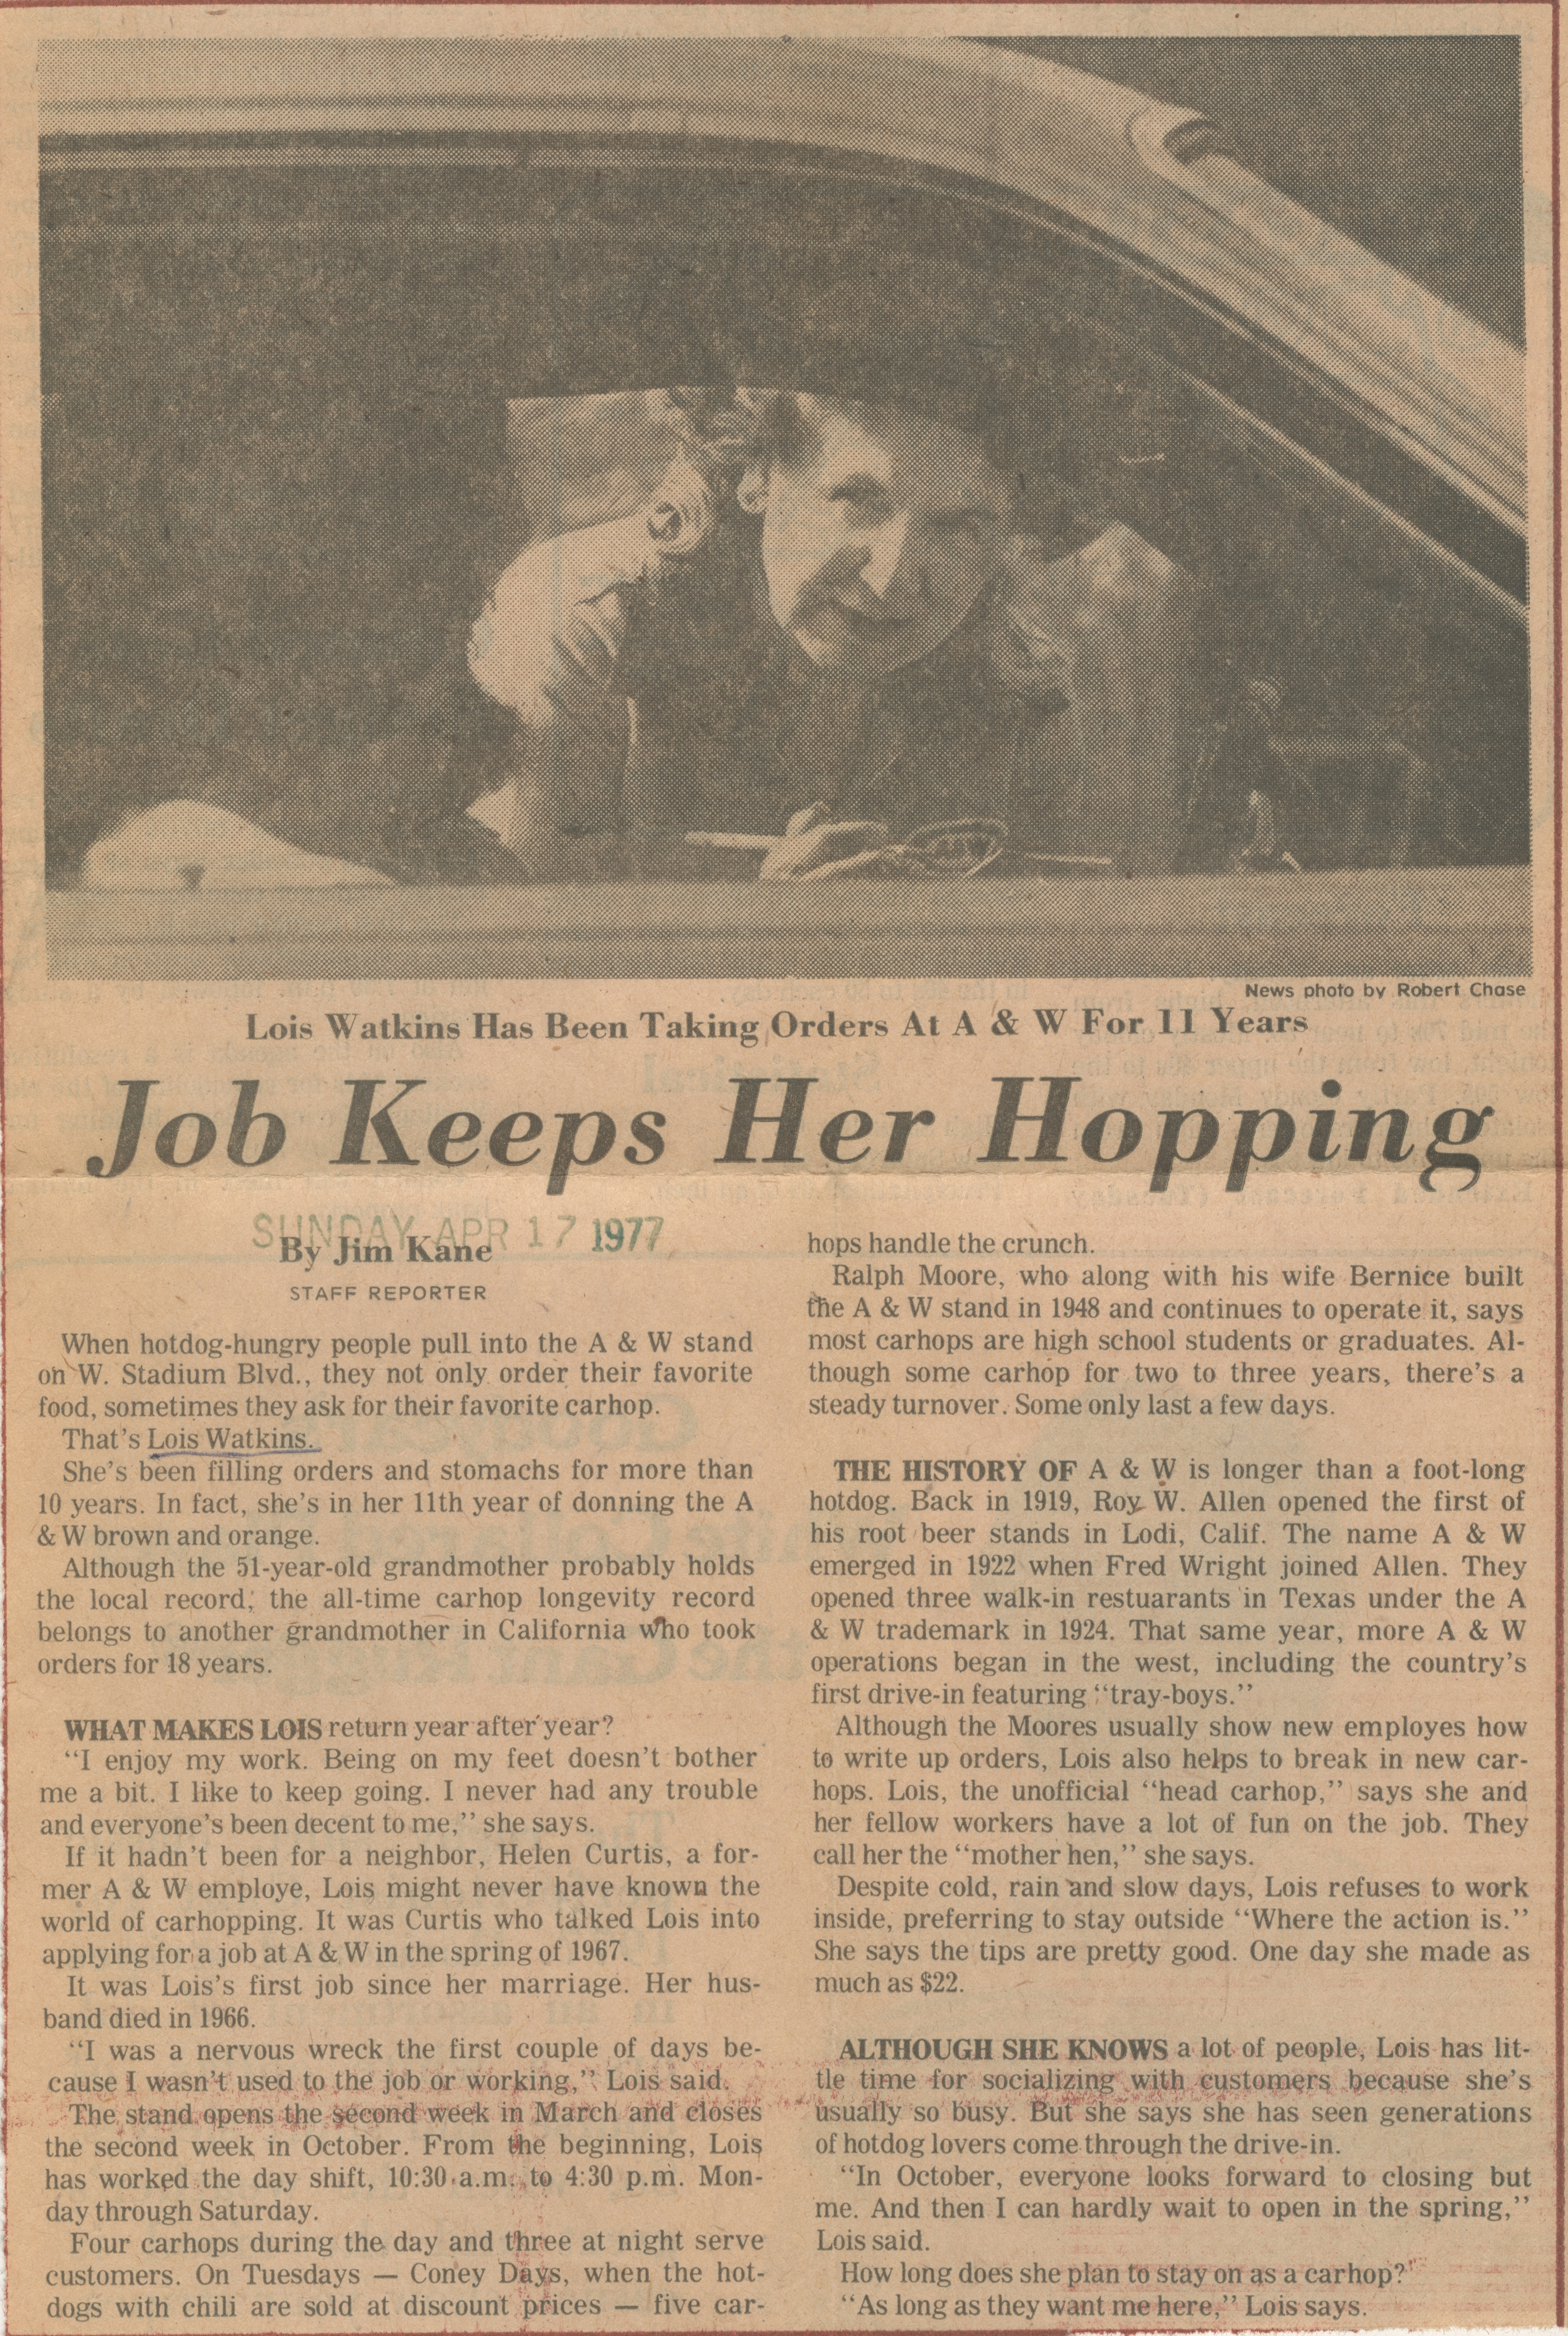 Job Keeps Her Hopping image